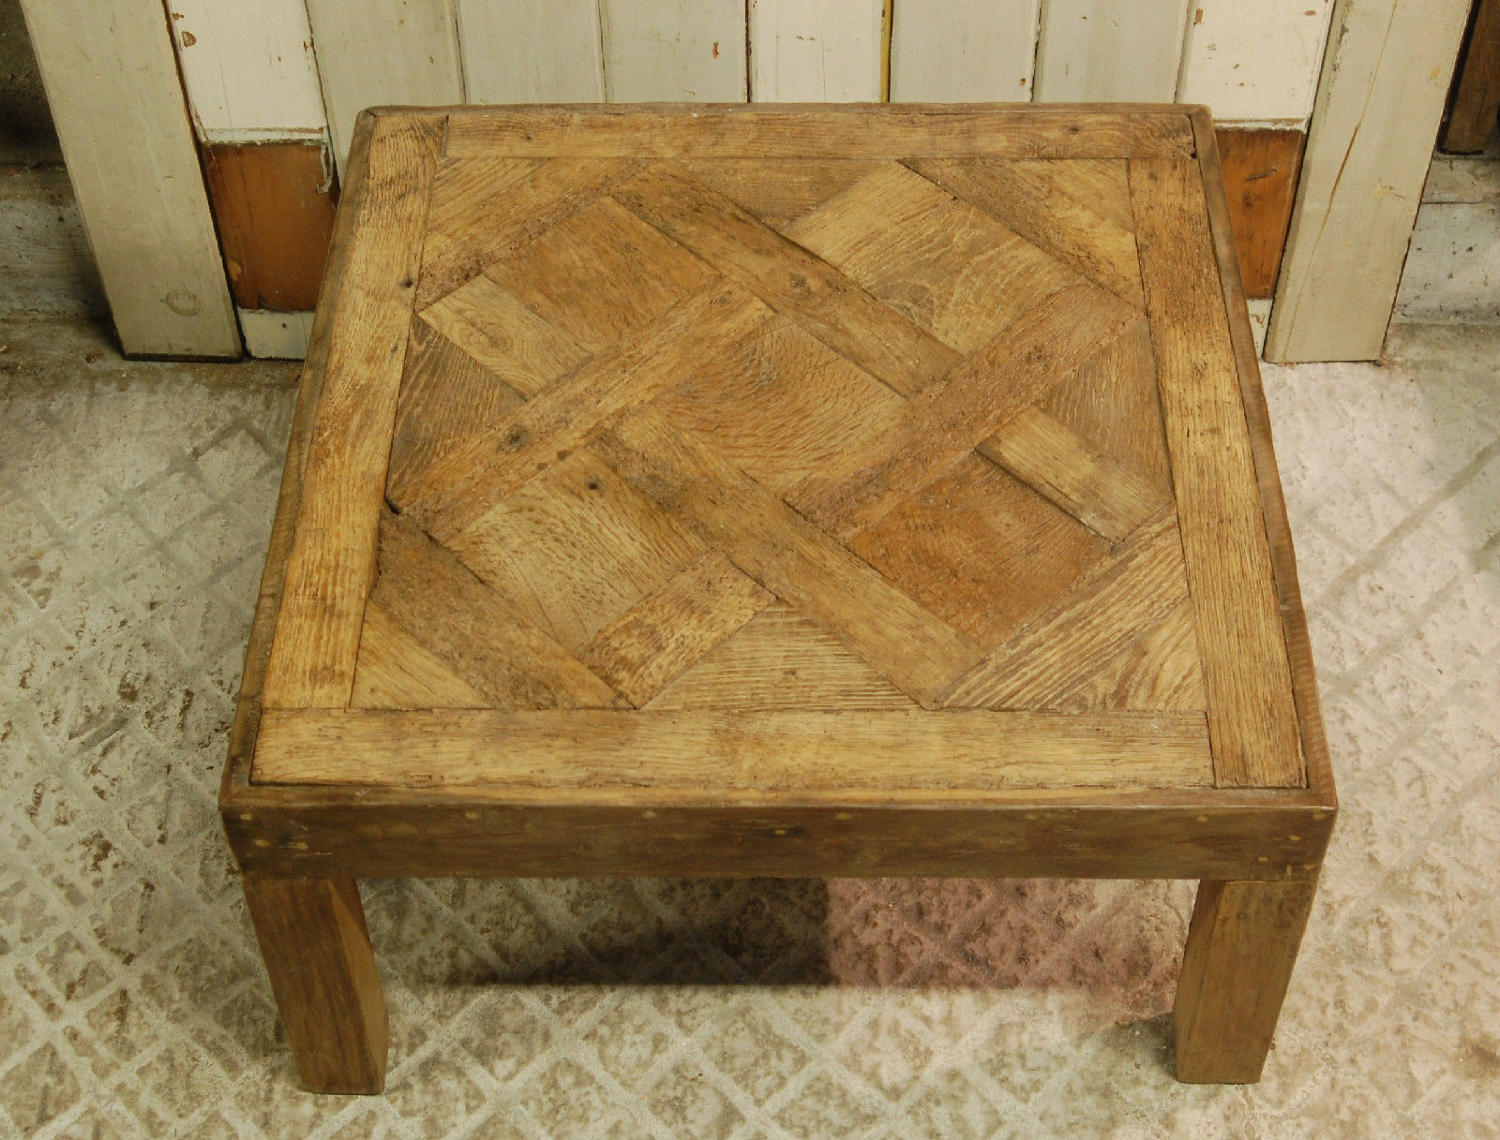 Reclaimed Oak Parquet De Versailles Panel Coffee Table ref 910